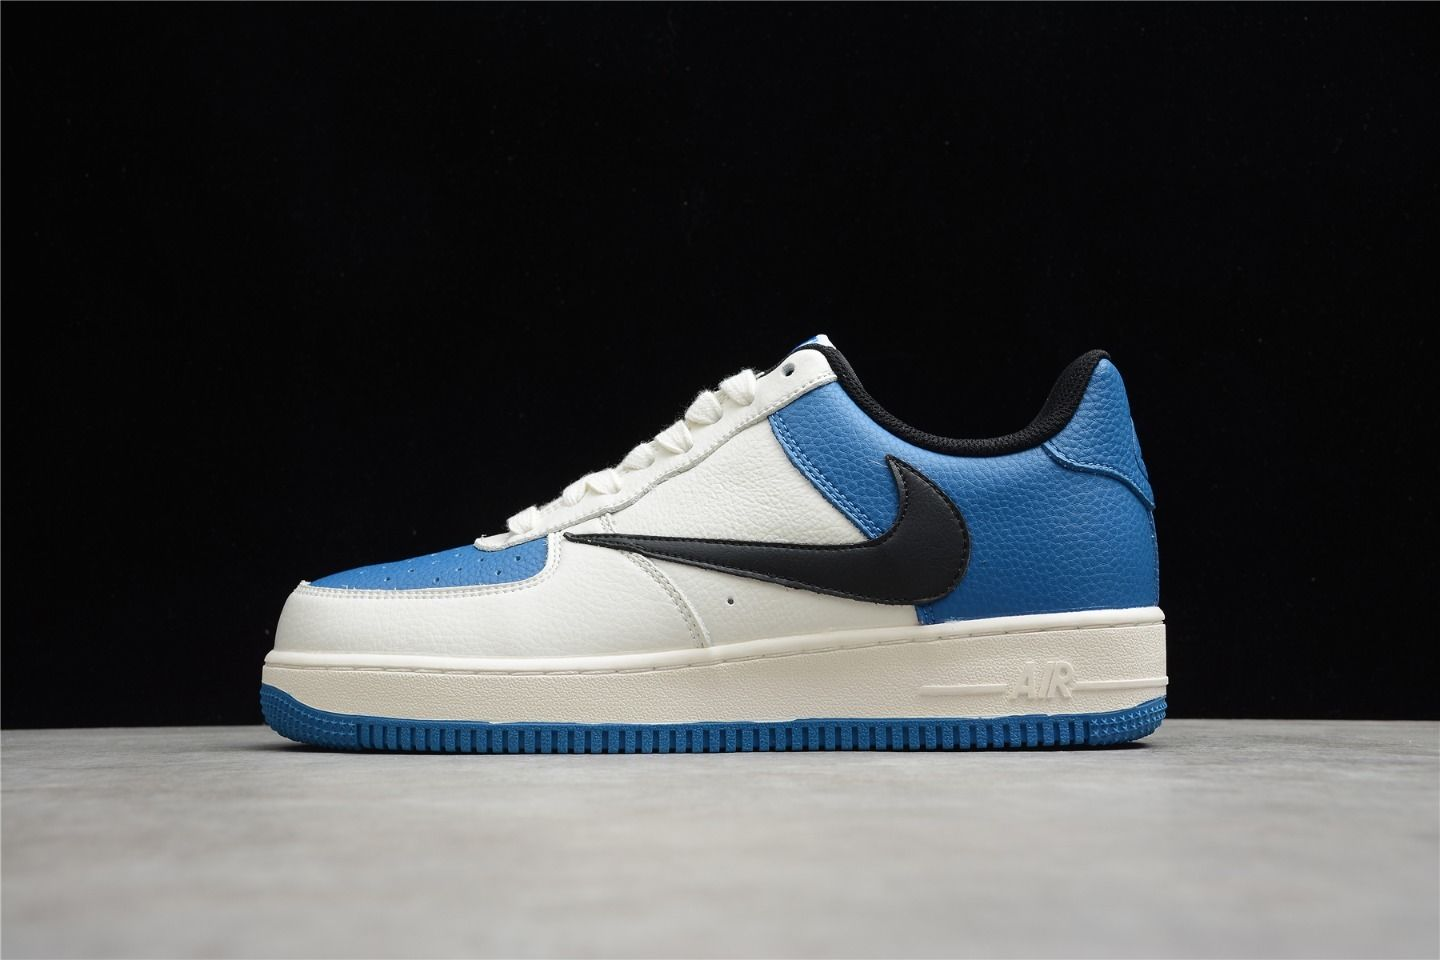 2021 Nike Air Force 1 White Blue-Black To Buy HG1136-022